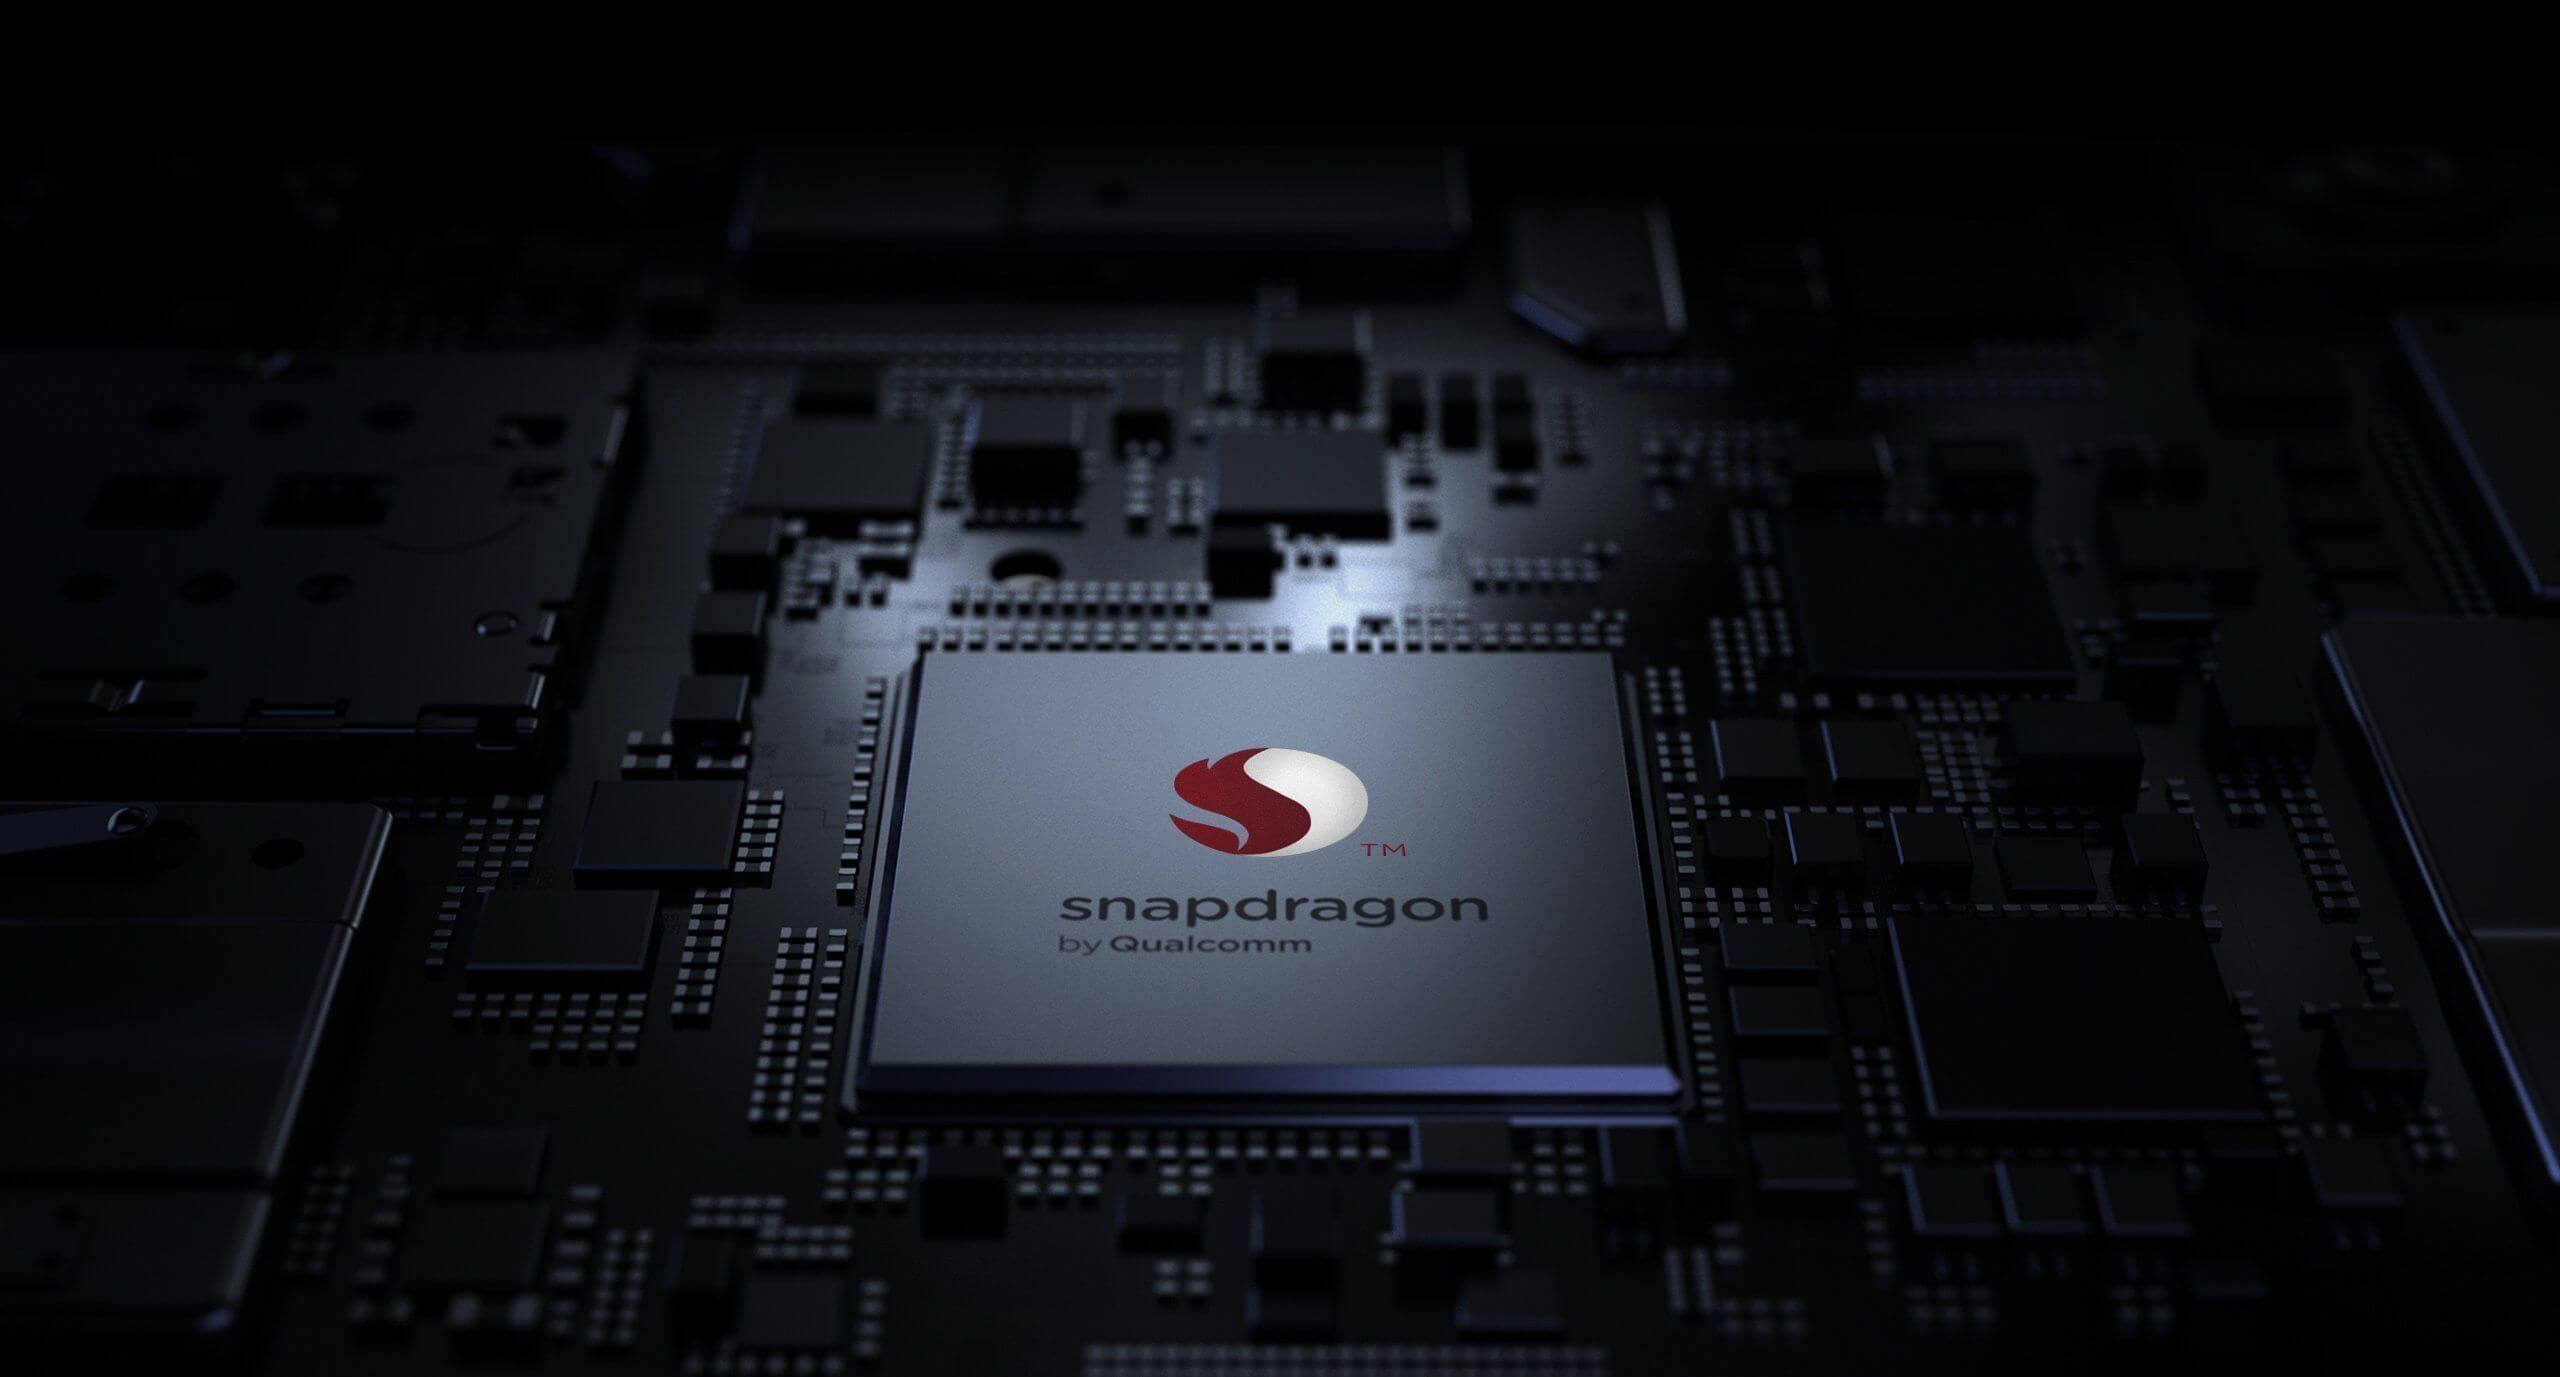 Qualcomm announces Snapdragon 768G, a faster mid-range SoC with global 5G support